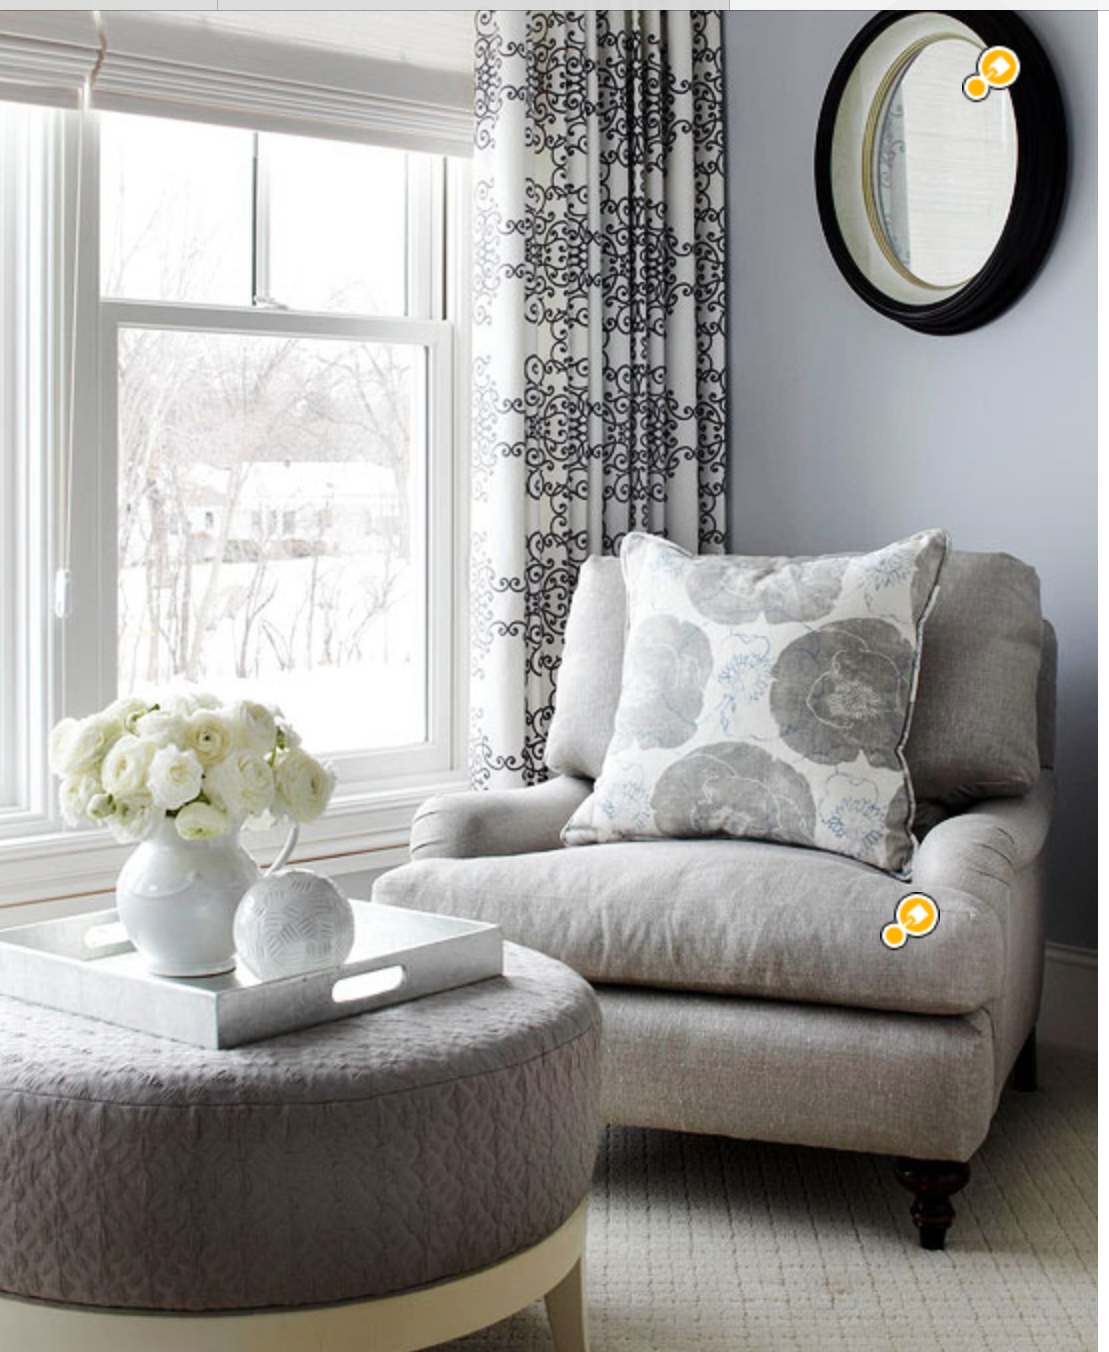 Dining Room Storage Ideas To Keep Your Scheme Clutter Free: COMFY GRAY CHAIRS SEATING AREA W/ROUND OTTOMAN FOR BEDROOM